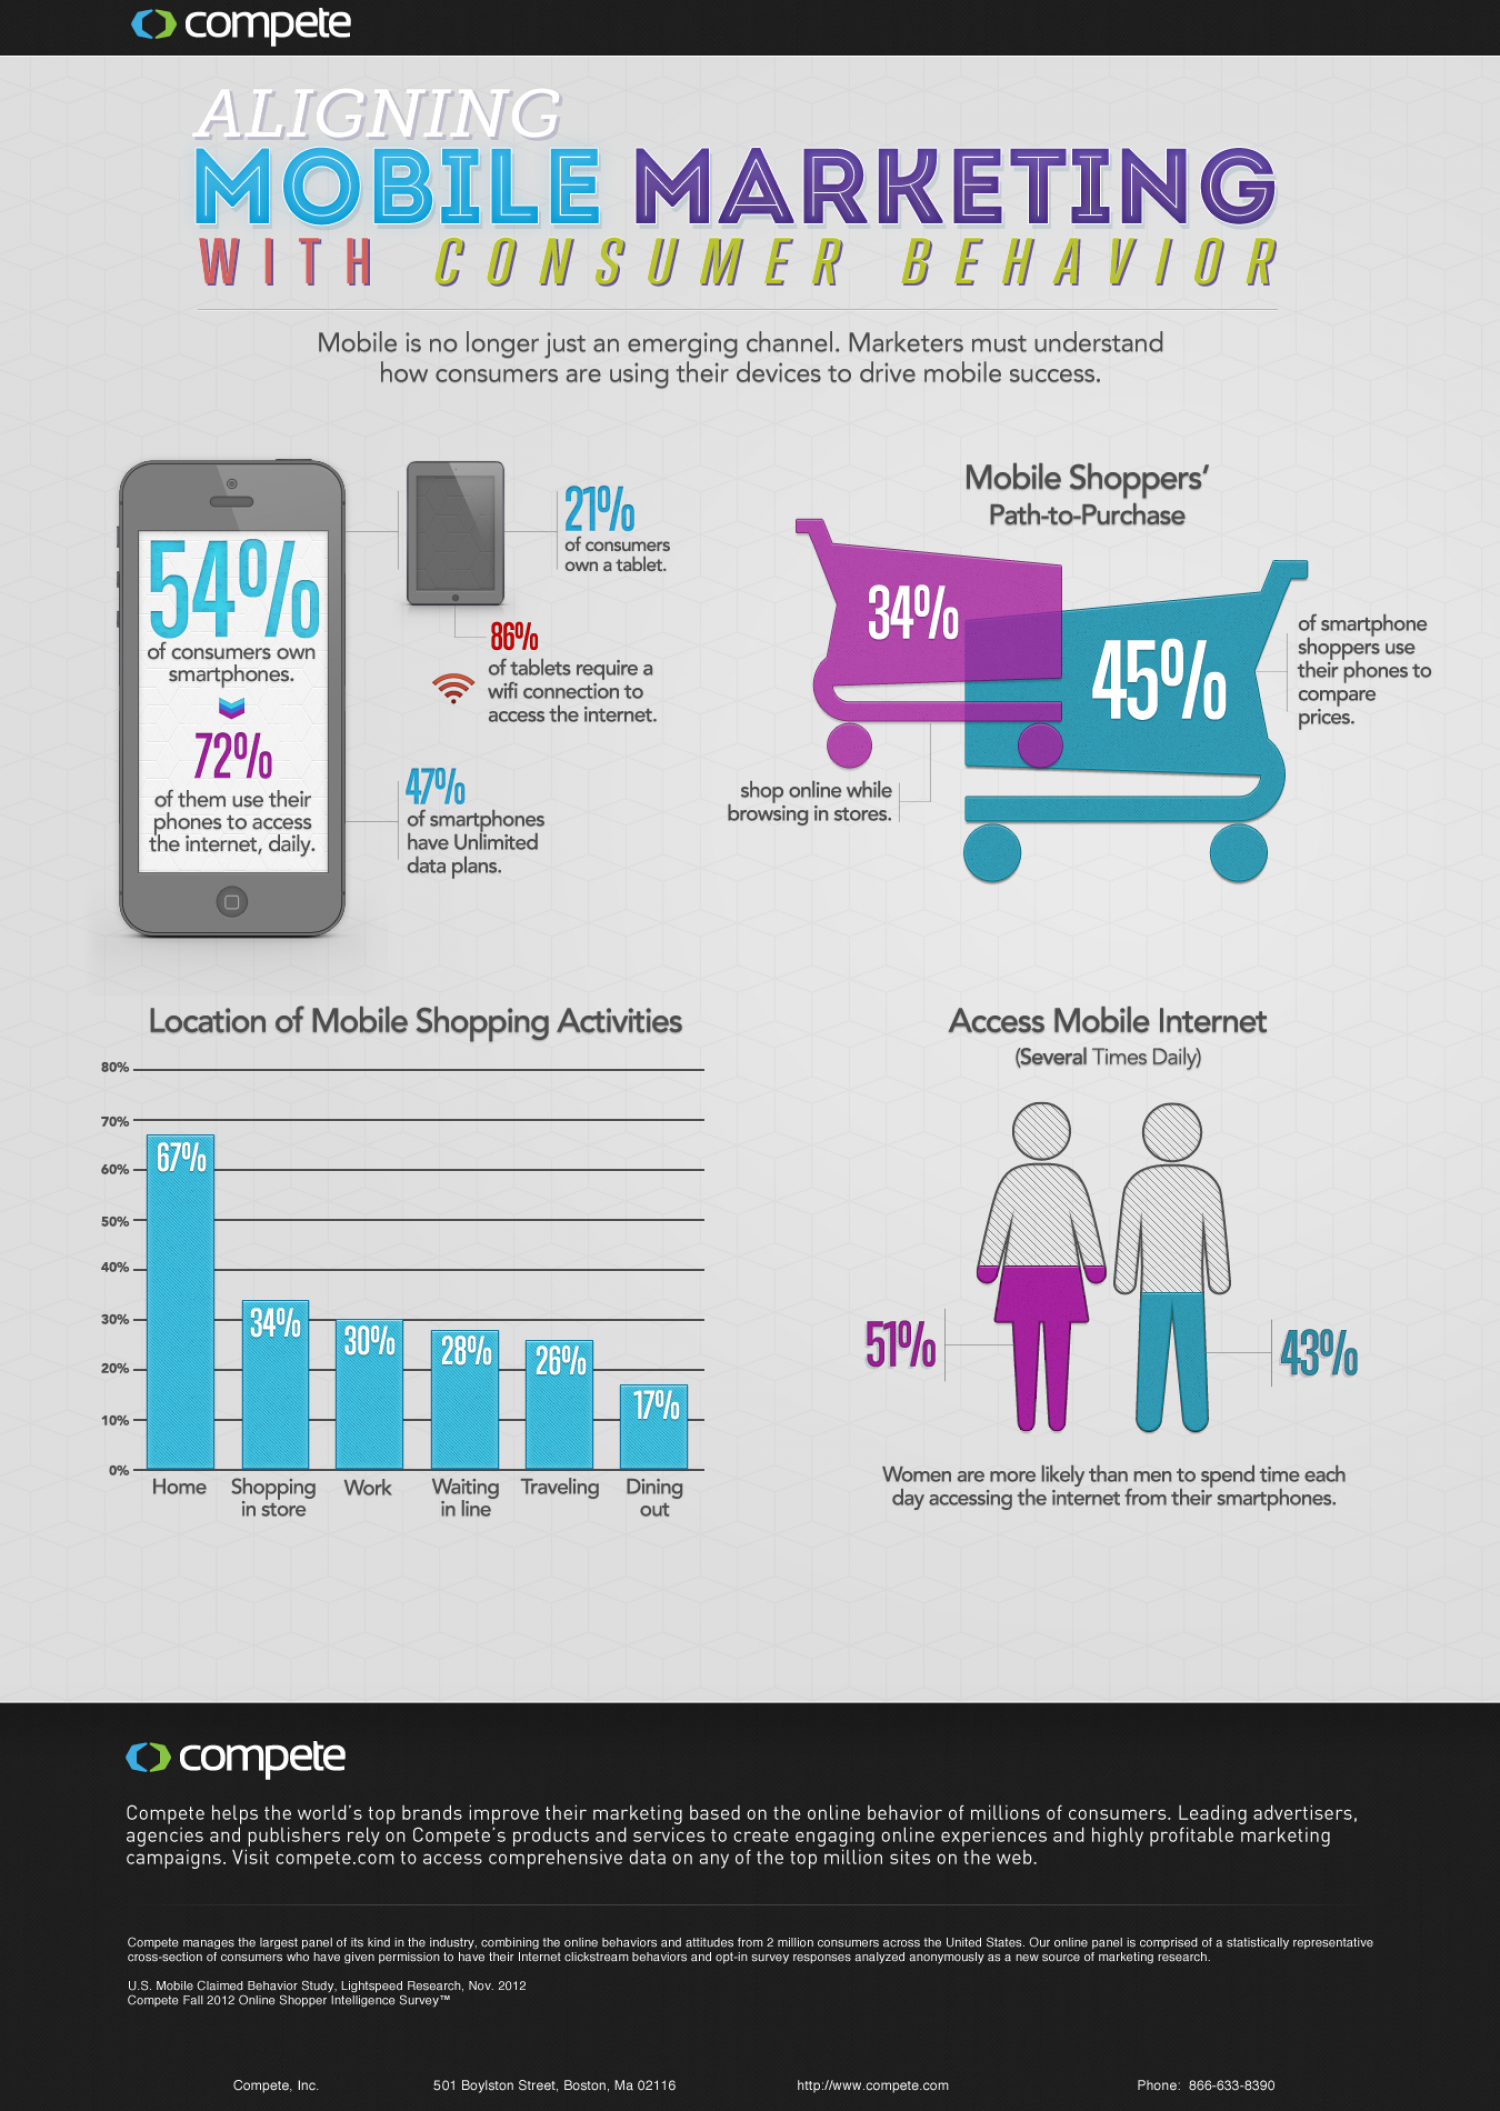 Aligning Mobile Marketing With Consumer Behavior  Infographic